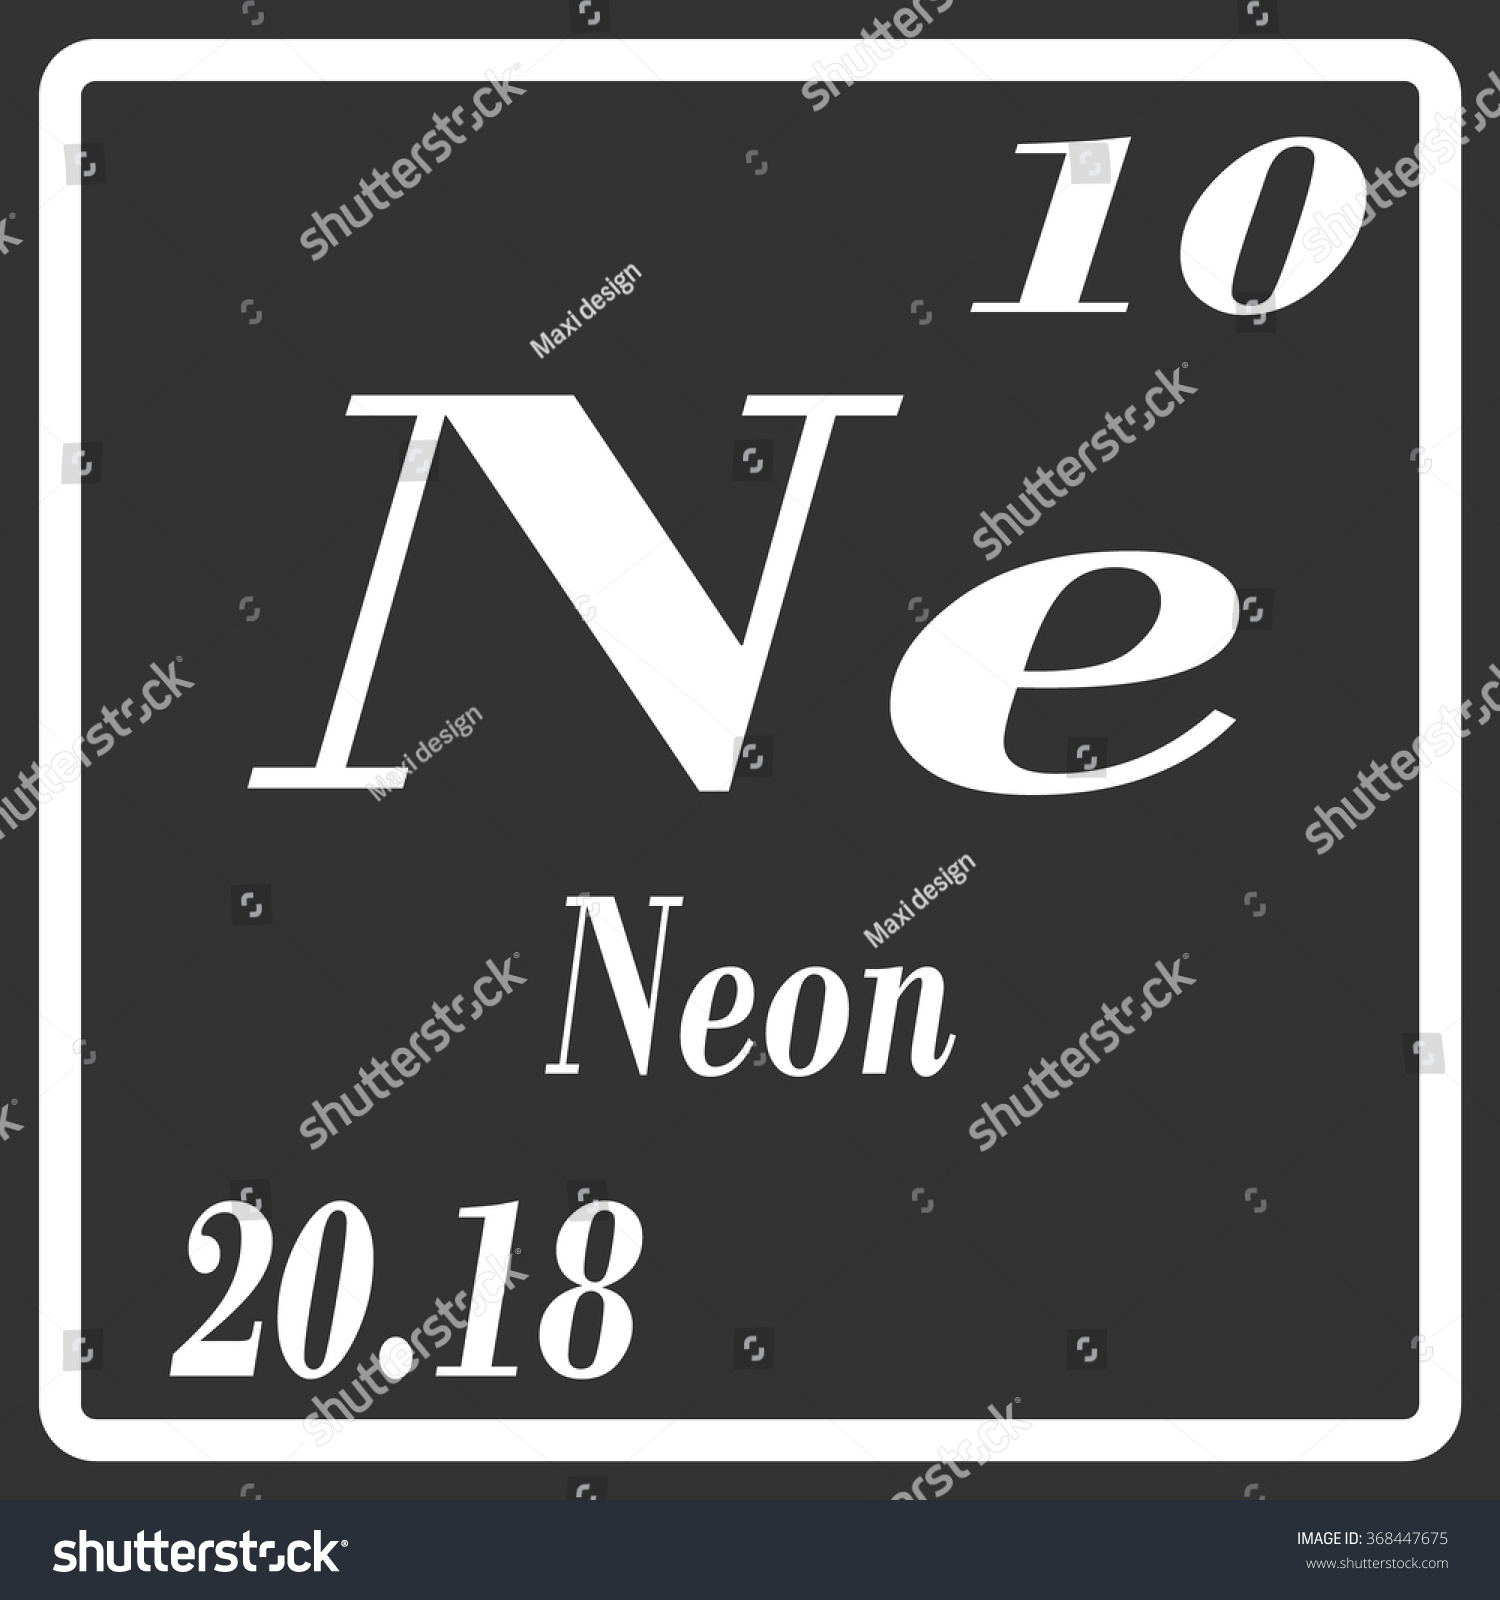 Periodic table elements neon stock vector 368447675 shutterstock periodic table of elements neon buycottarizona Images